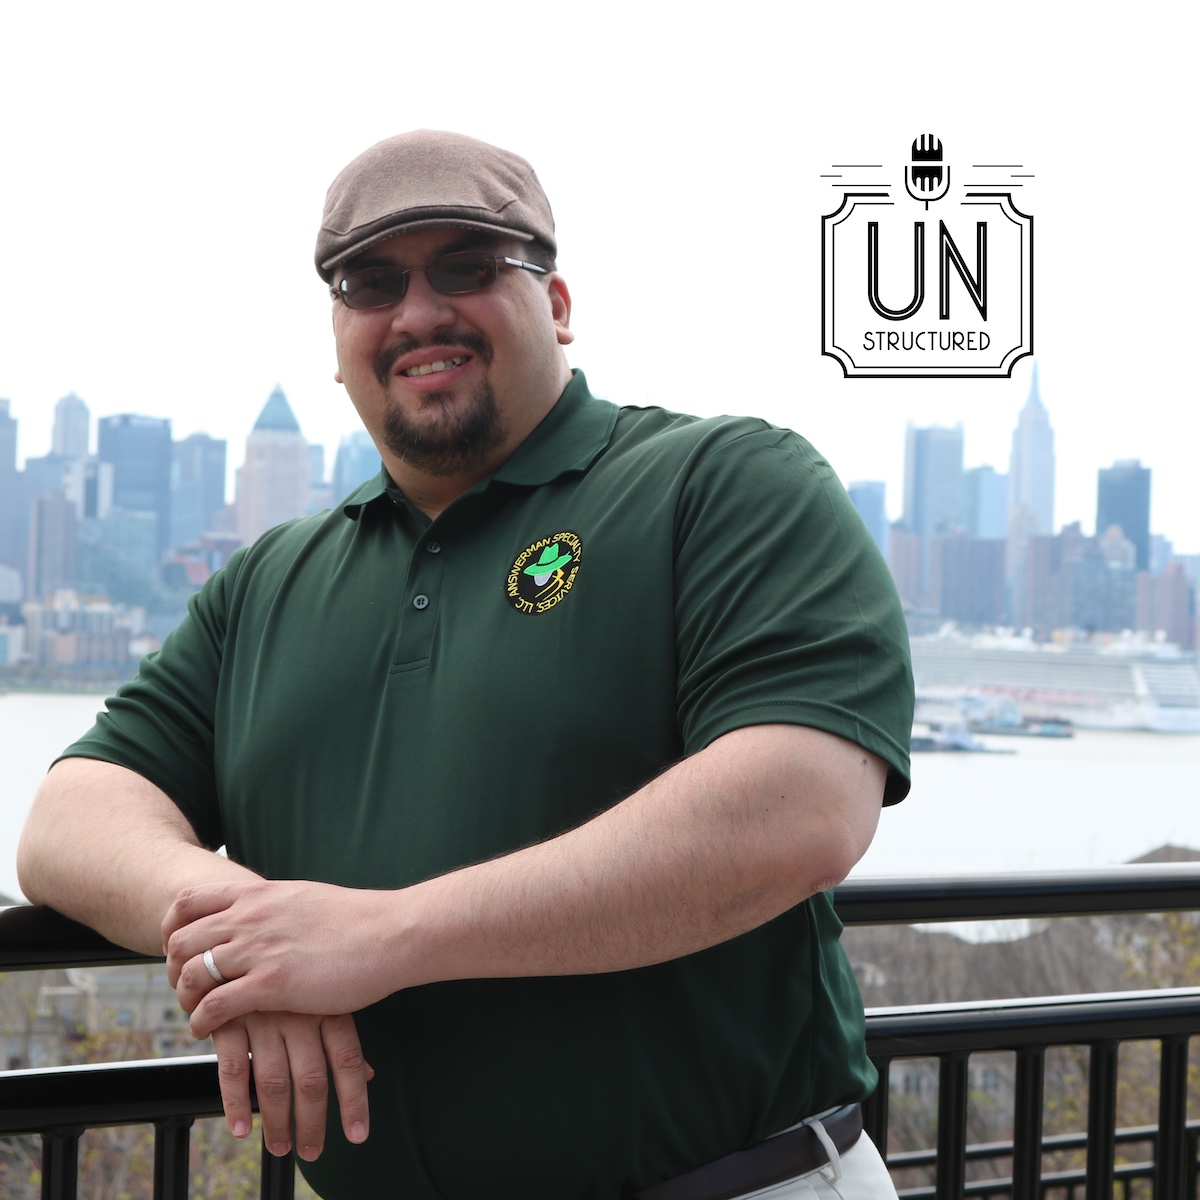 034 - Julio Briones UnstructuredPod Unstructured interviews - Dynamic Informal Conversations with unique wide-ranging and well-researched interviews hosted by Eric Hunley